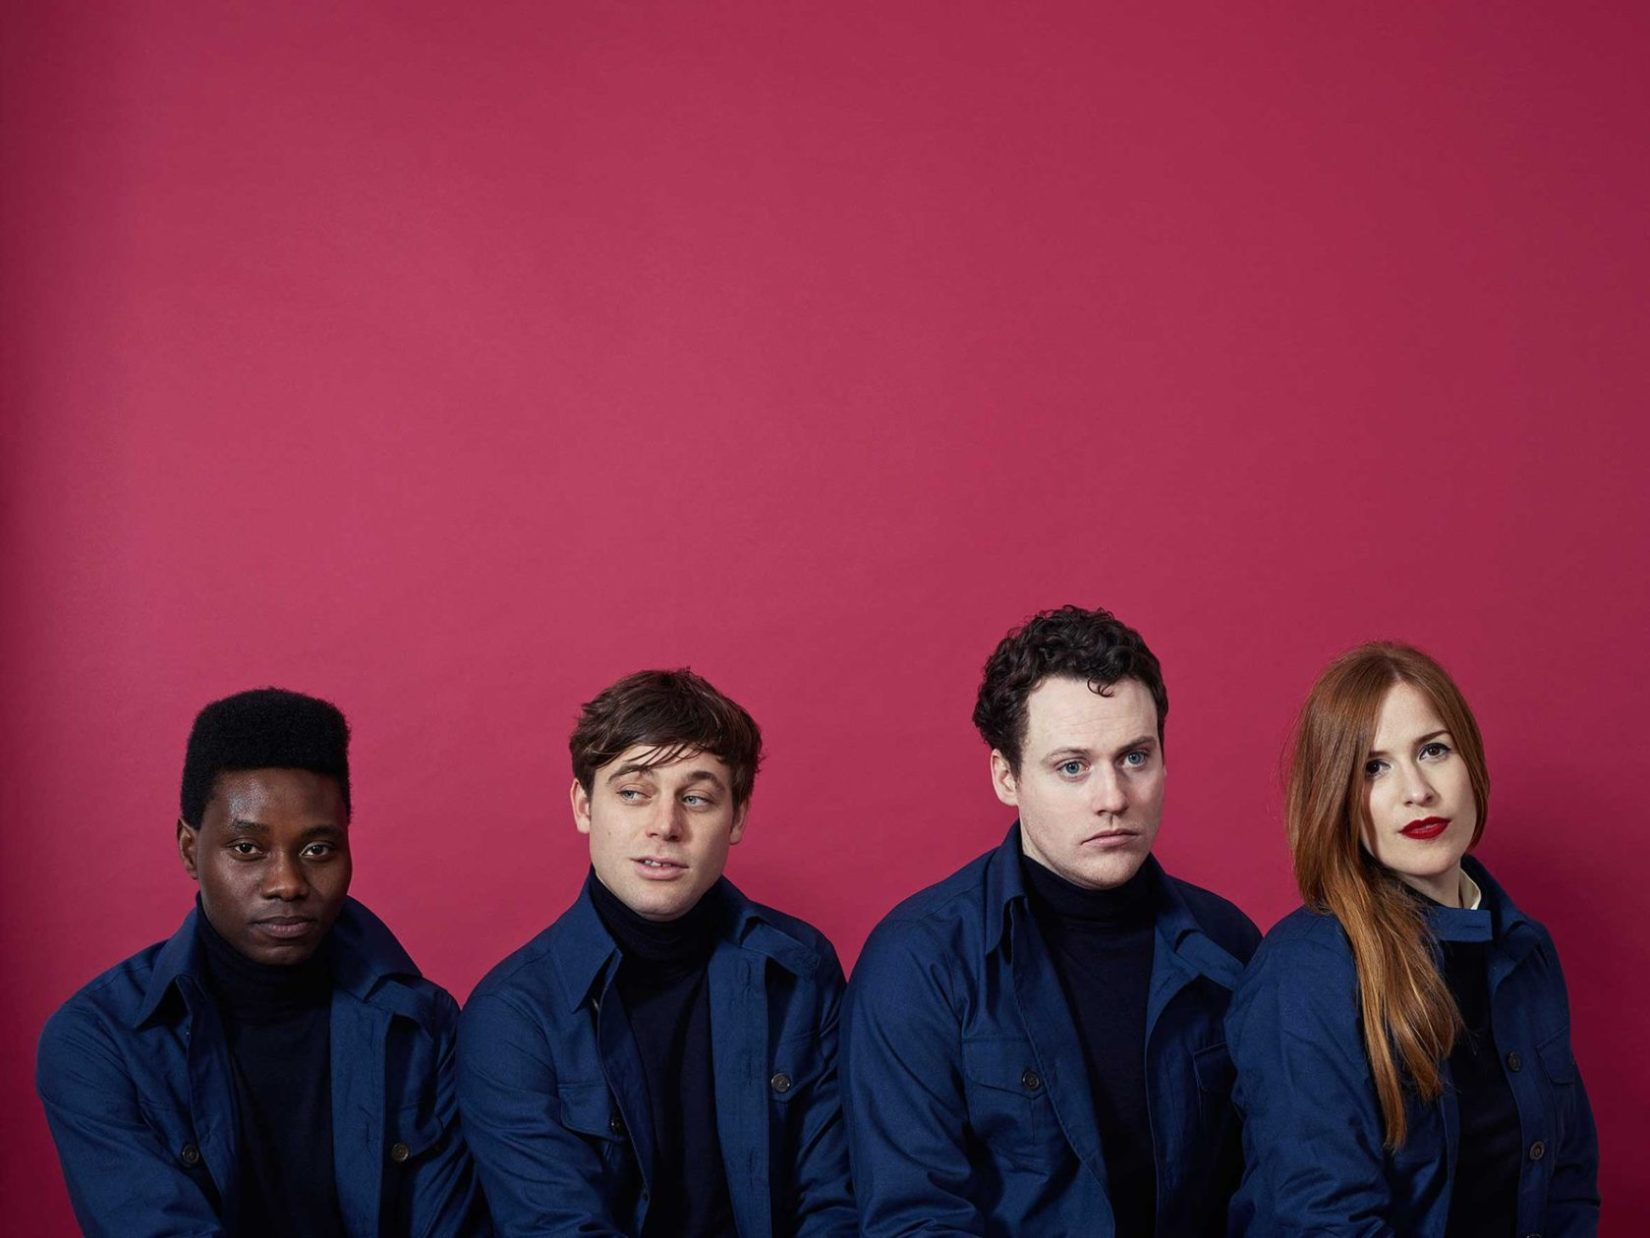 metronomy summer 08 album